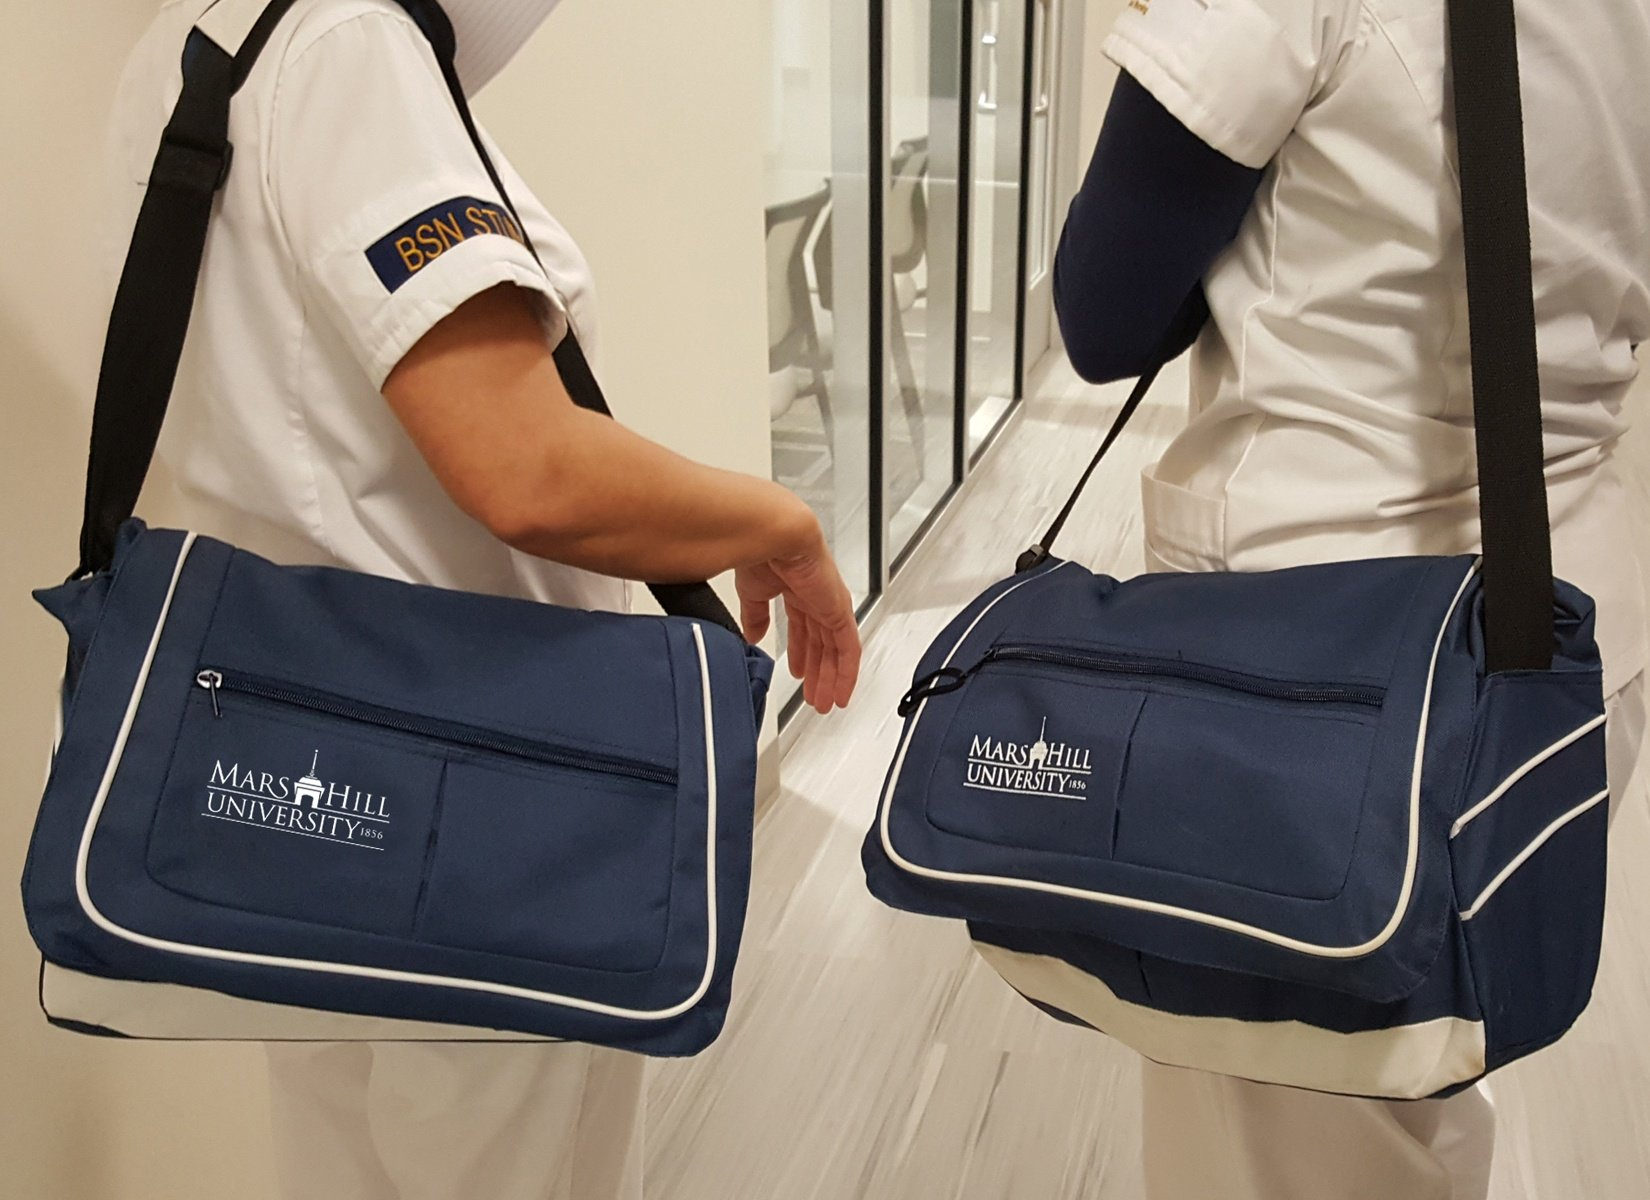 It's in the Bag: Student Health Totes